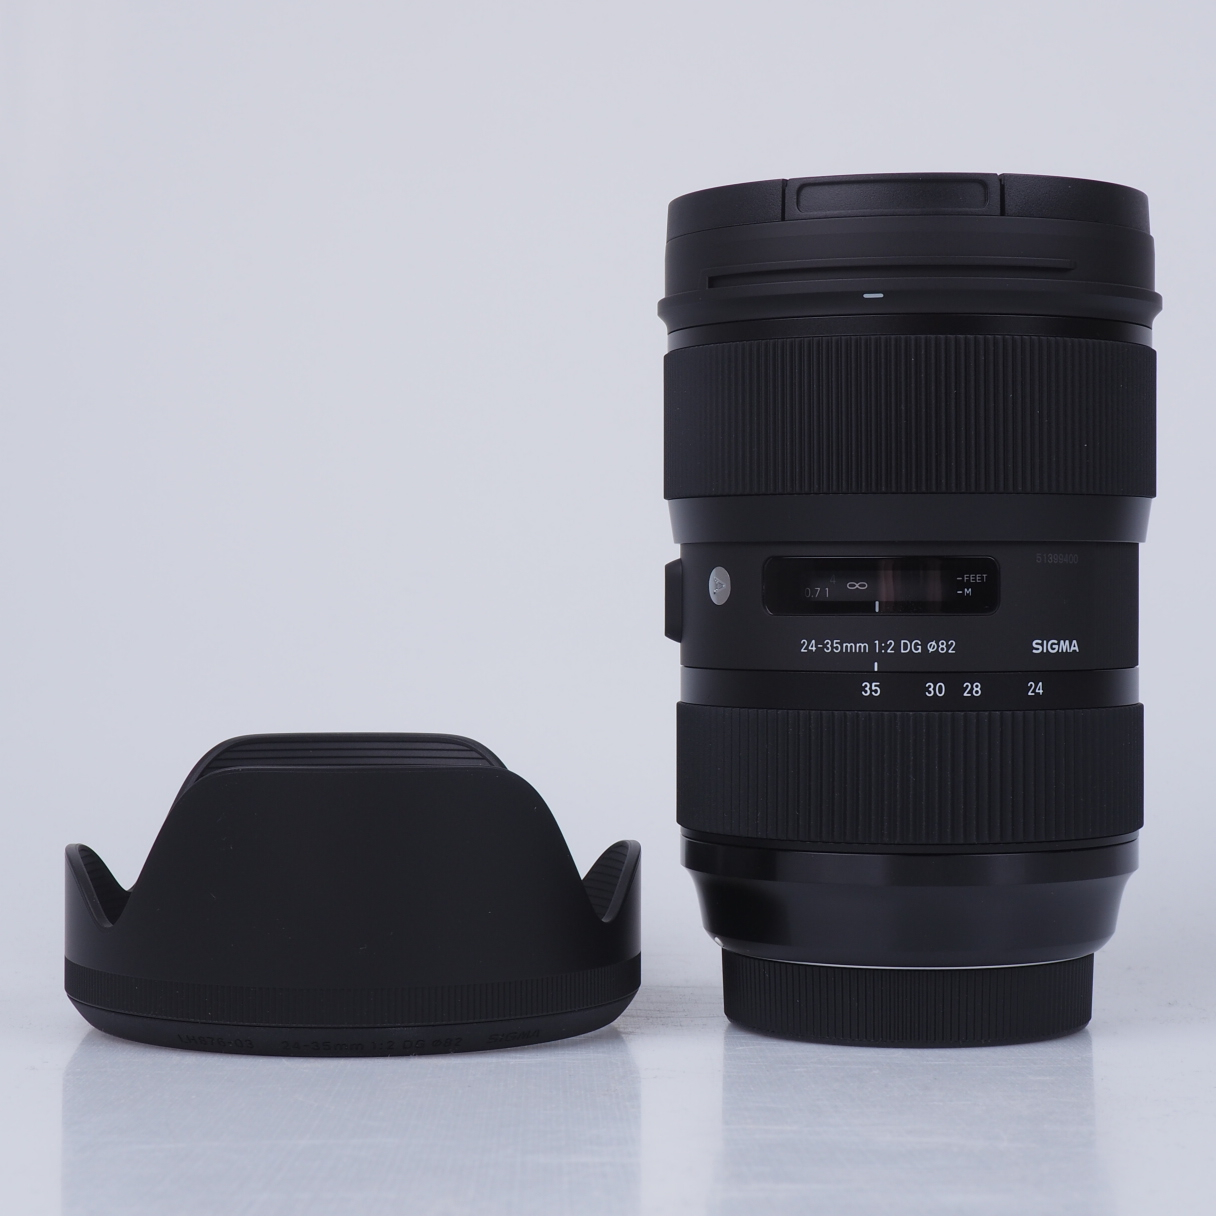 Image of Sigma ART 24-35mm F2 DG HSM lenses for Canon mount